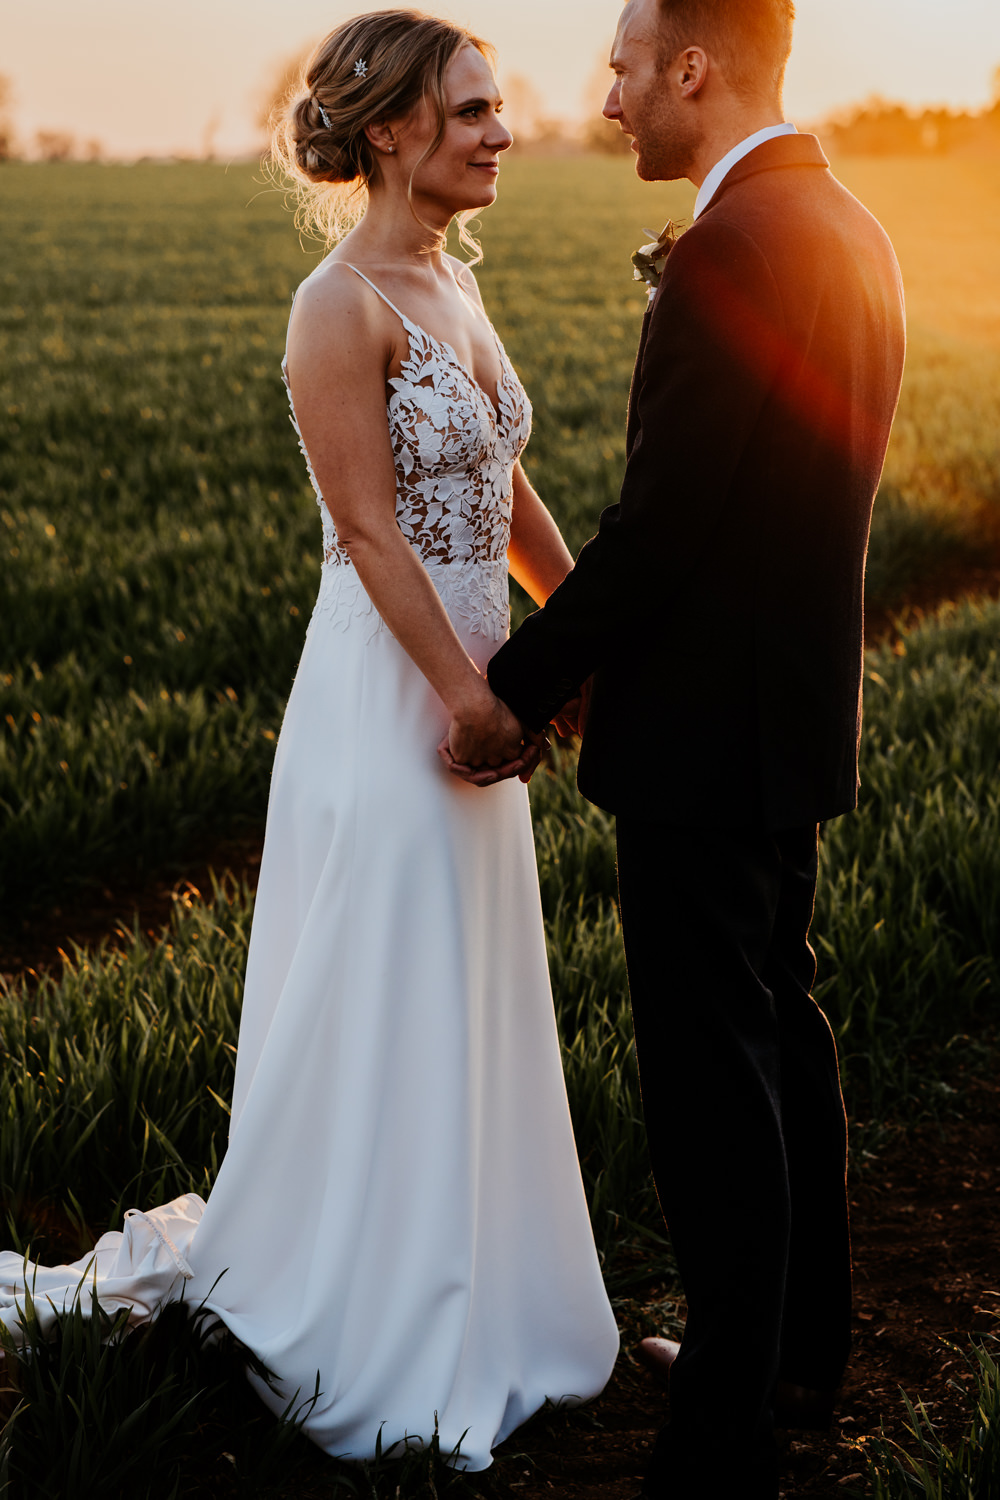 Bride Bridal Sleeveless Strappy Illusion Dress Silk Maxi Slim Separates Floral Tweed Waistcoat Groom Contemporary Barn Wedding Ryan Goold Photography